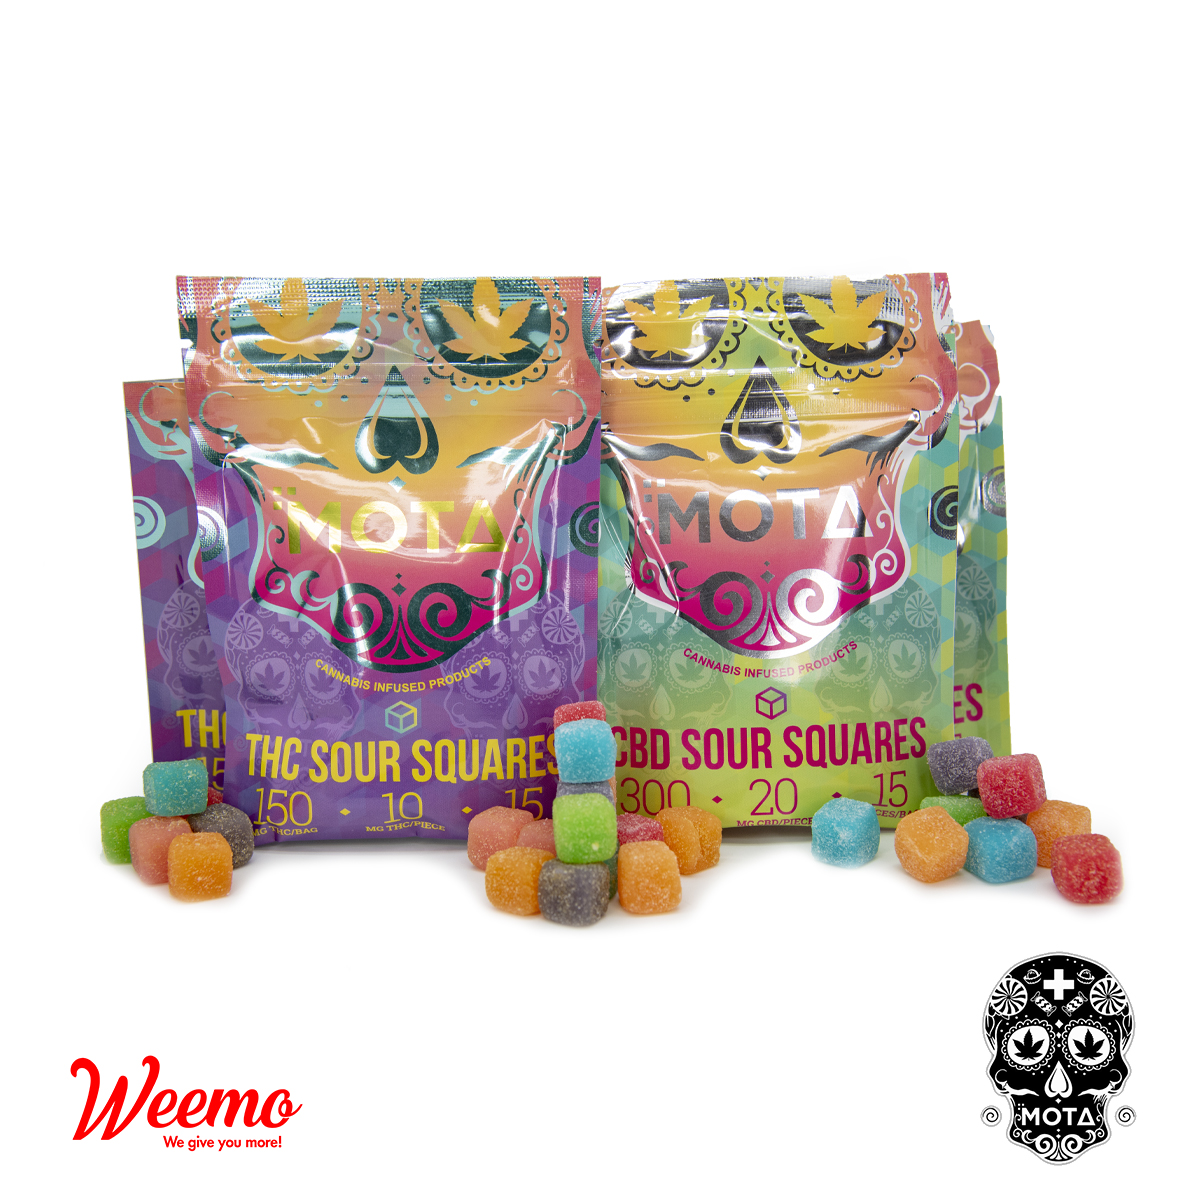 MOTA Sour Squares by Weemo - Image © 2020 Weemo. All Rights Reserved.